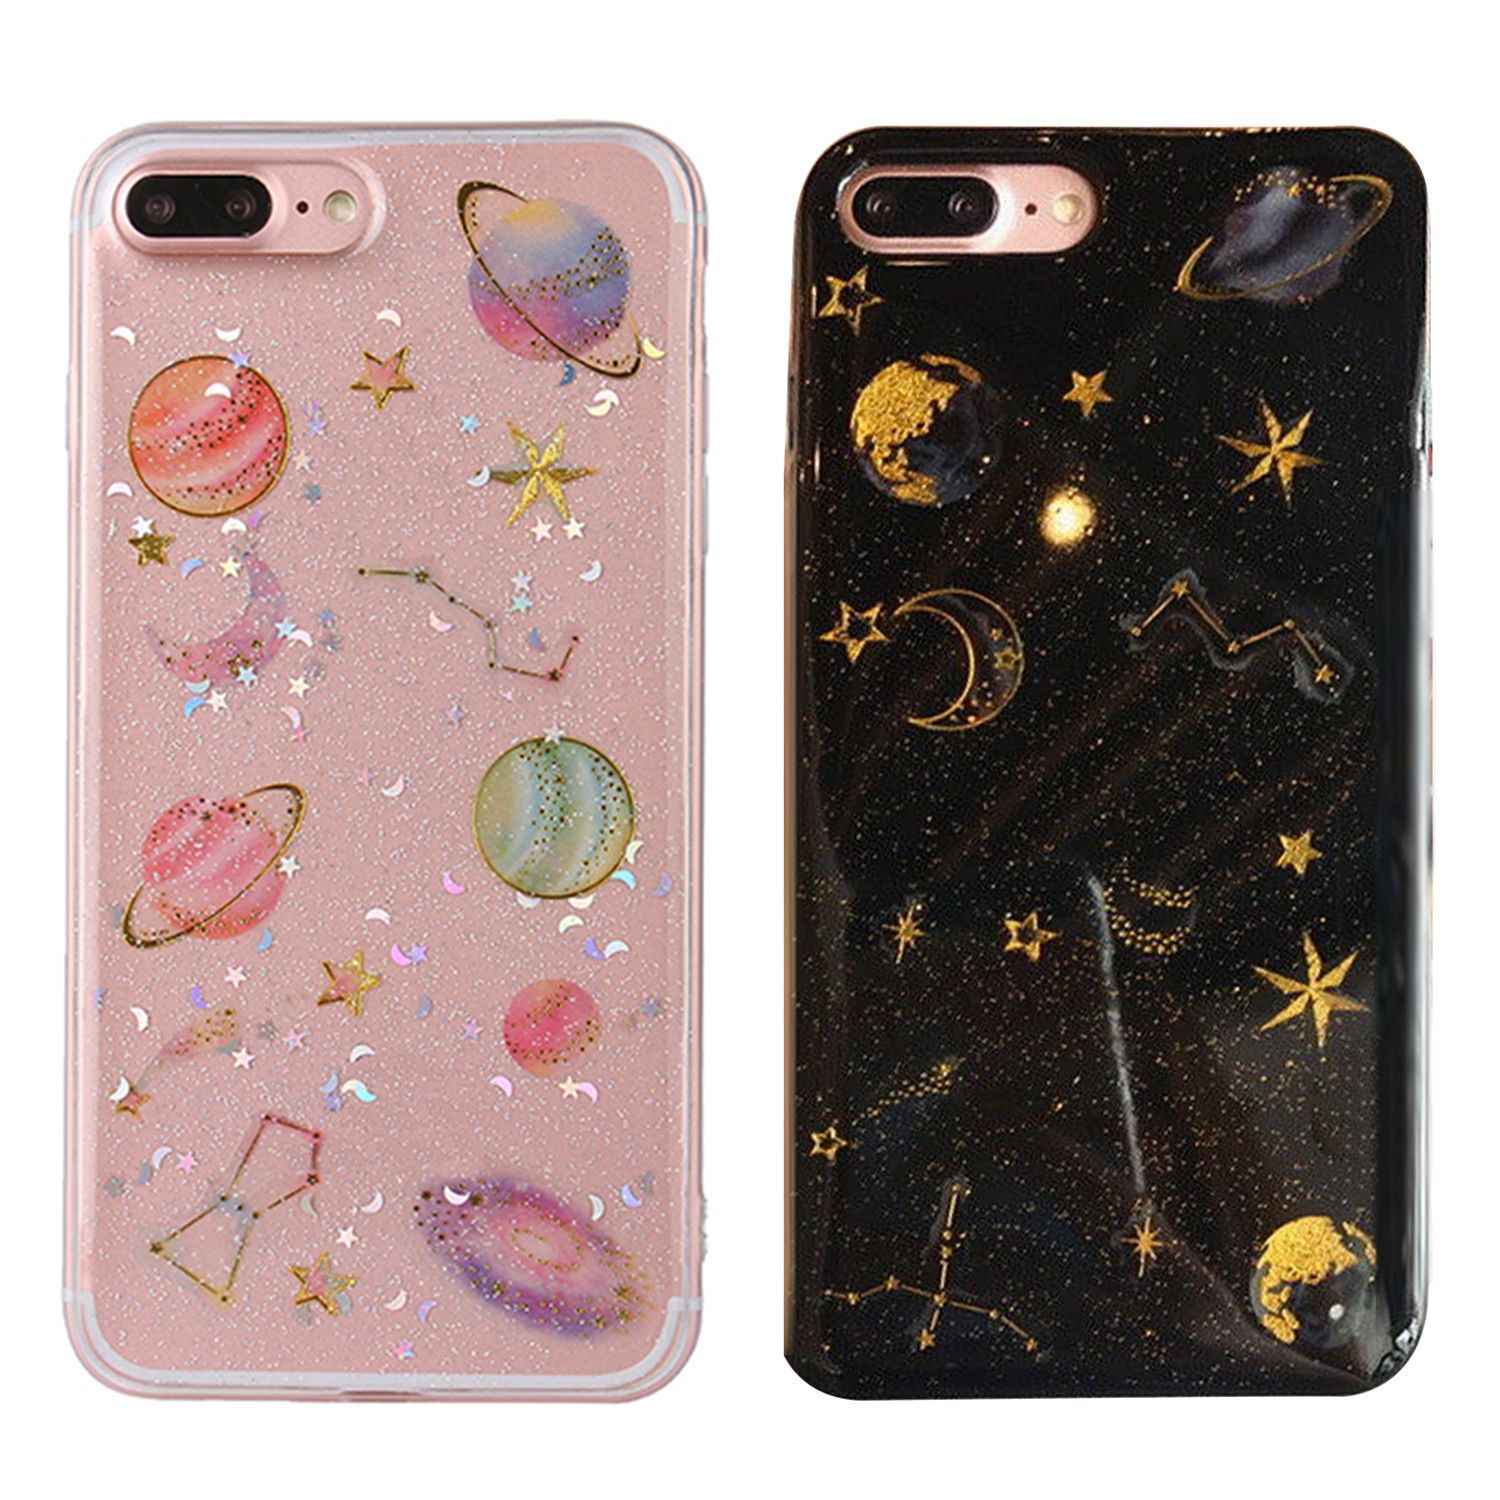 2 49 Gbp Cosmos Bling Glitter Star Planet Constellation Soft Case For Iphone X 8 7 6p